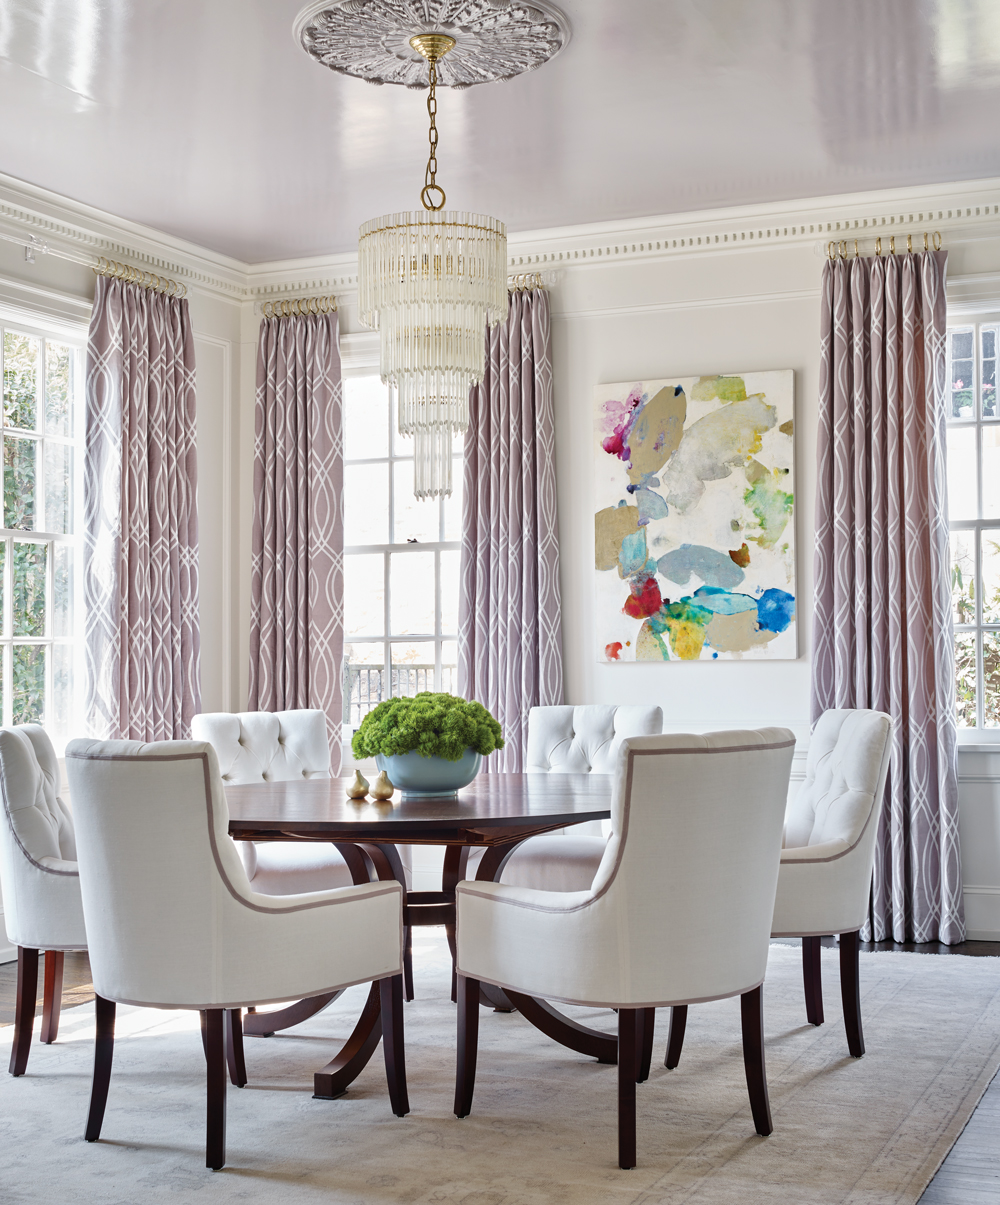 The Round Dining Room Table Suits The Architecture Of The Room. Ross  Requested That All Of The Chairs Have Arms, So Huff Dewberry Came Up With A  Custom ...